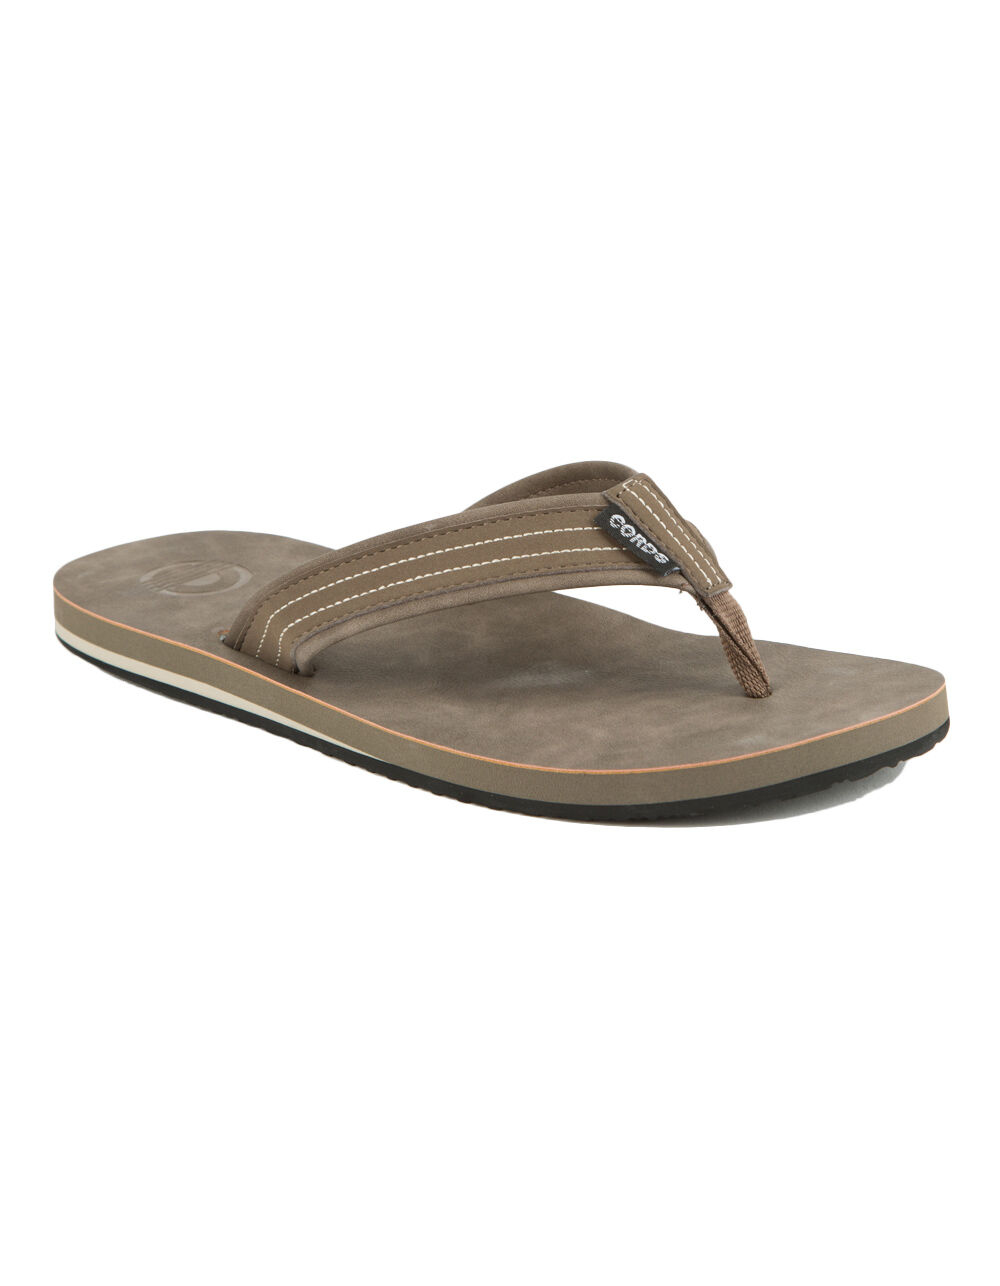 Image of CORDS COMMANDO 2 BROWN SANDALS